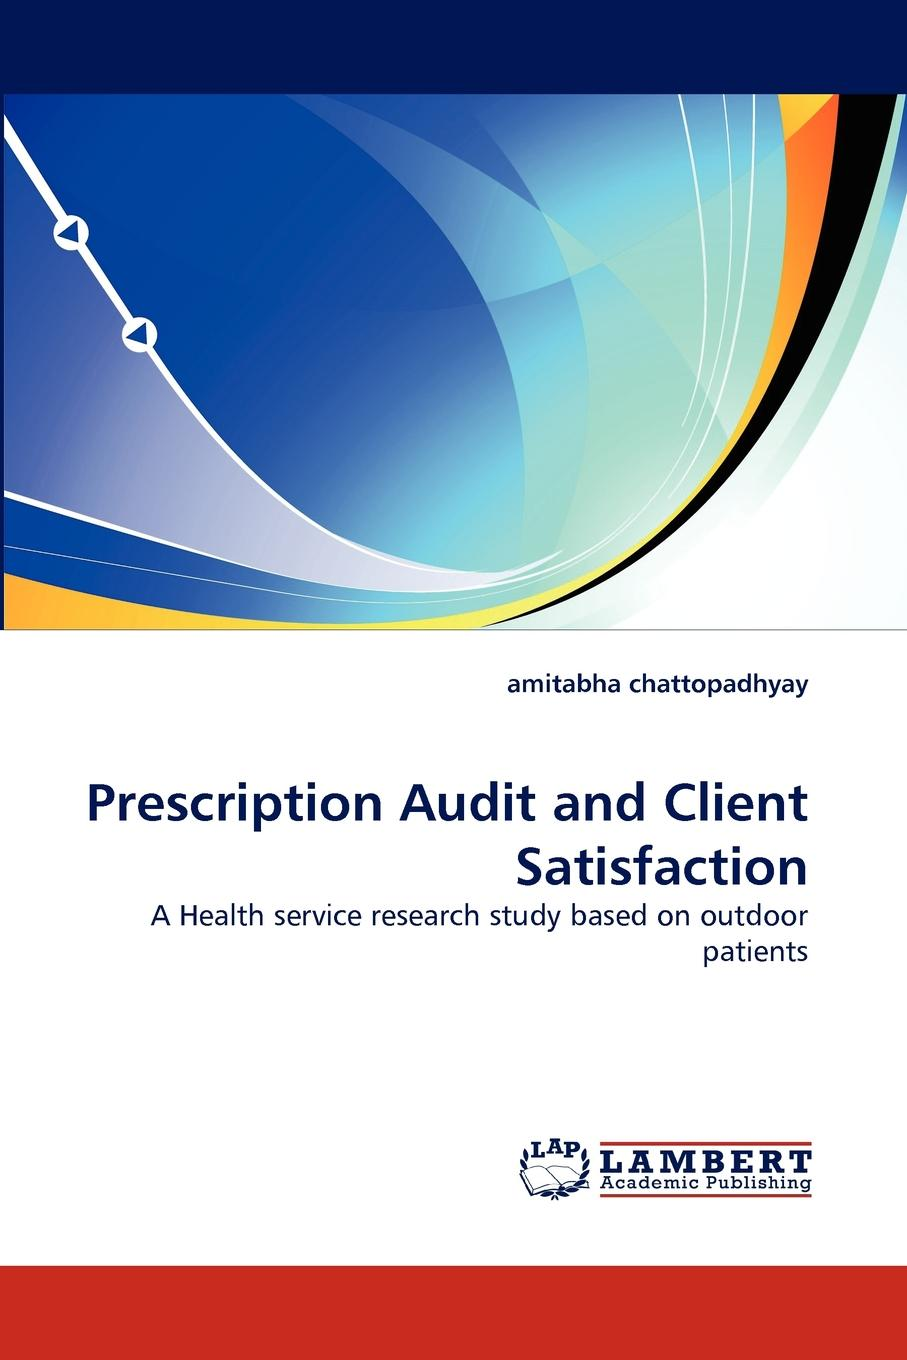 amitabha chattopadhyay Prescription Audit and Client Satisfaction women autonomy and health decisions a study of punjab pakistan